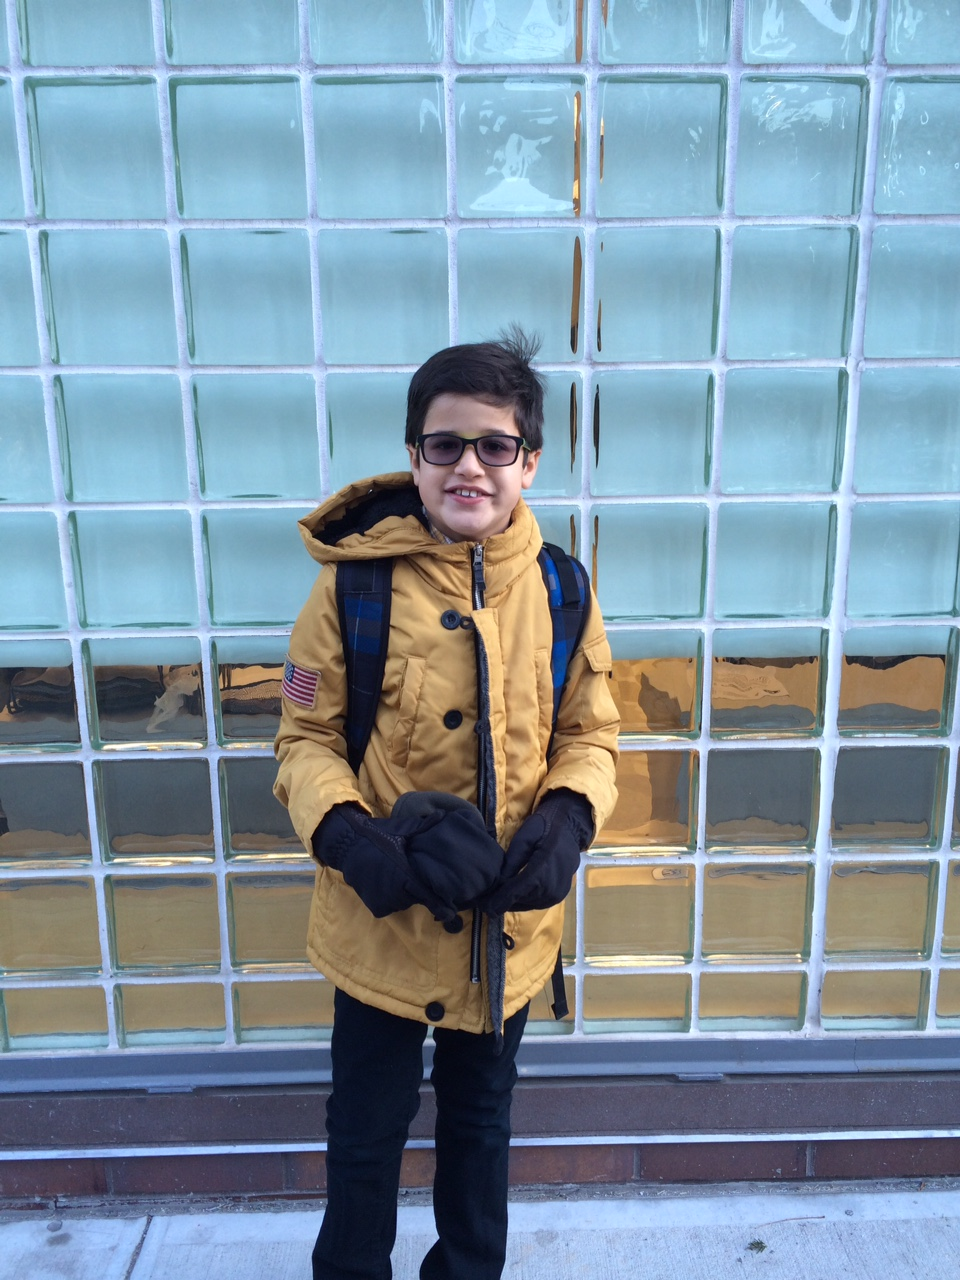 ENzo has found a new School FamiLY At PS 51 in ManHattan.